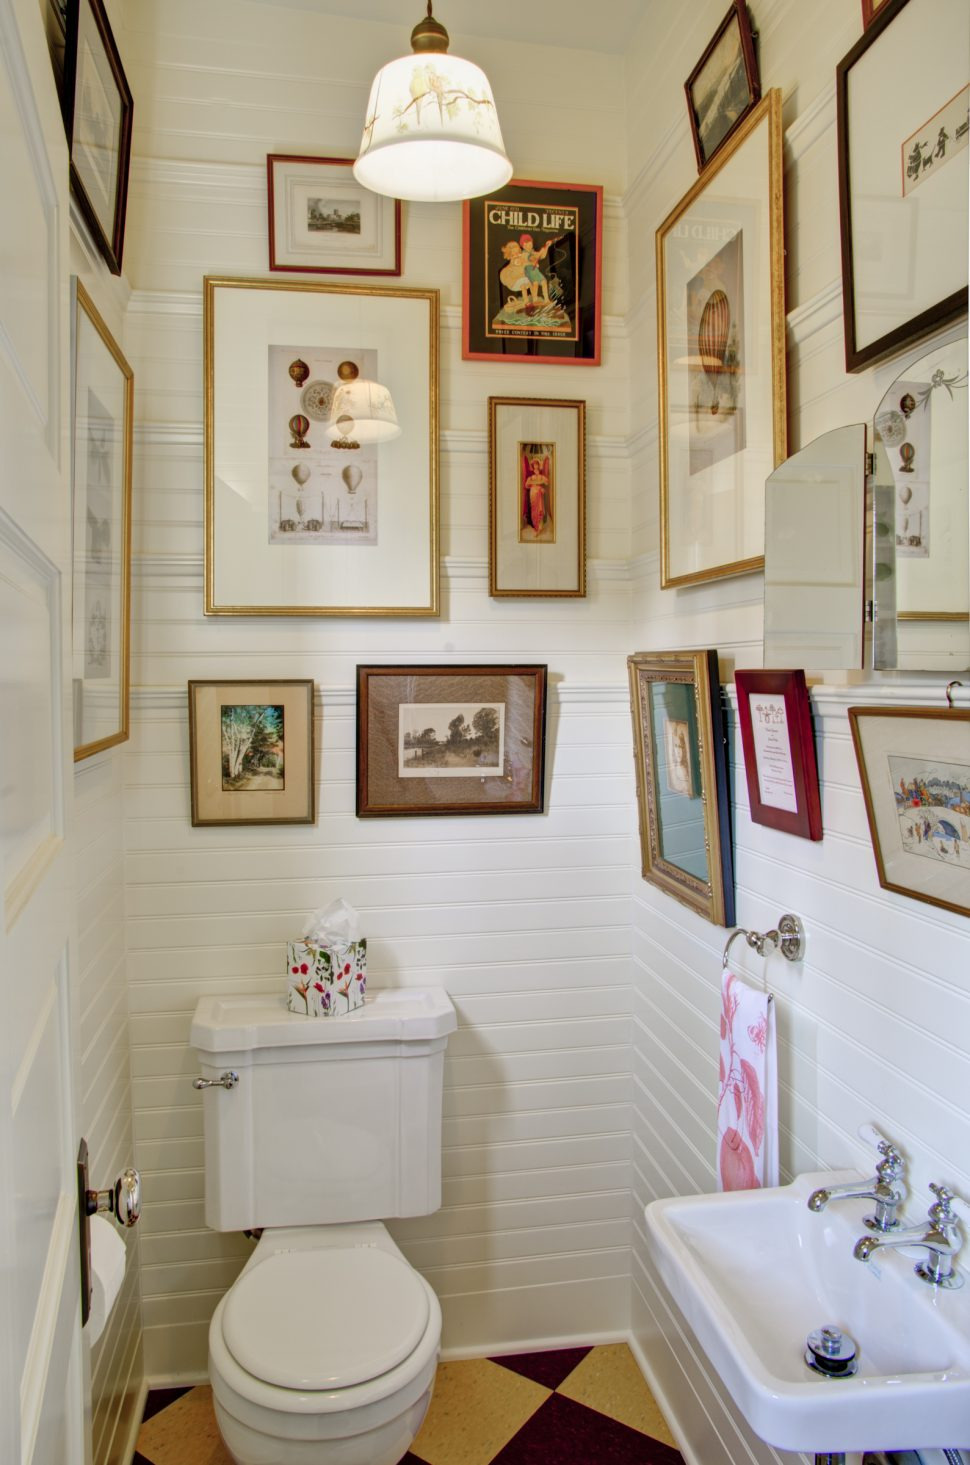 wall decorating ideas from portland seattle home builder then wall decorating ideas from decorations bathroom picture restroom decoration ideas 970x1465